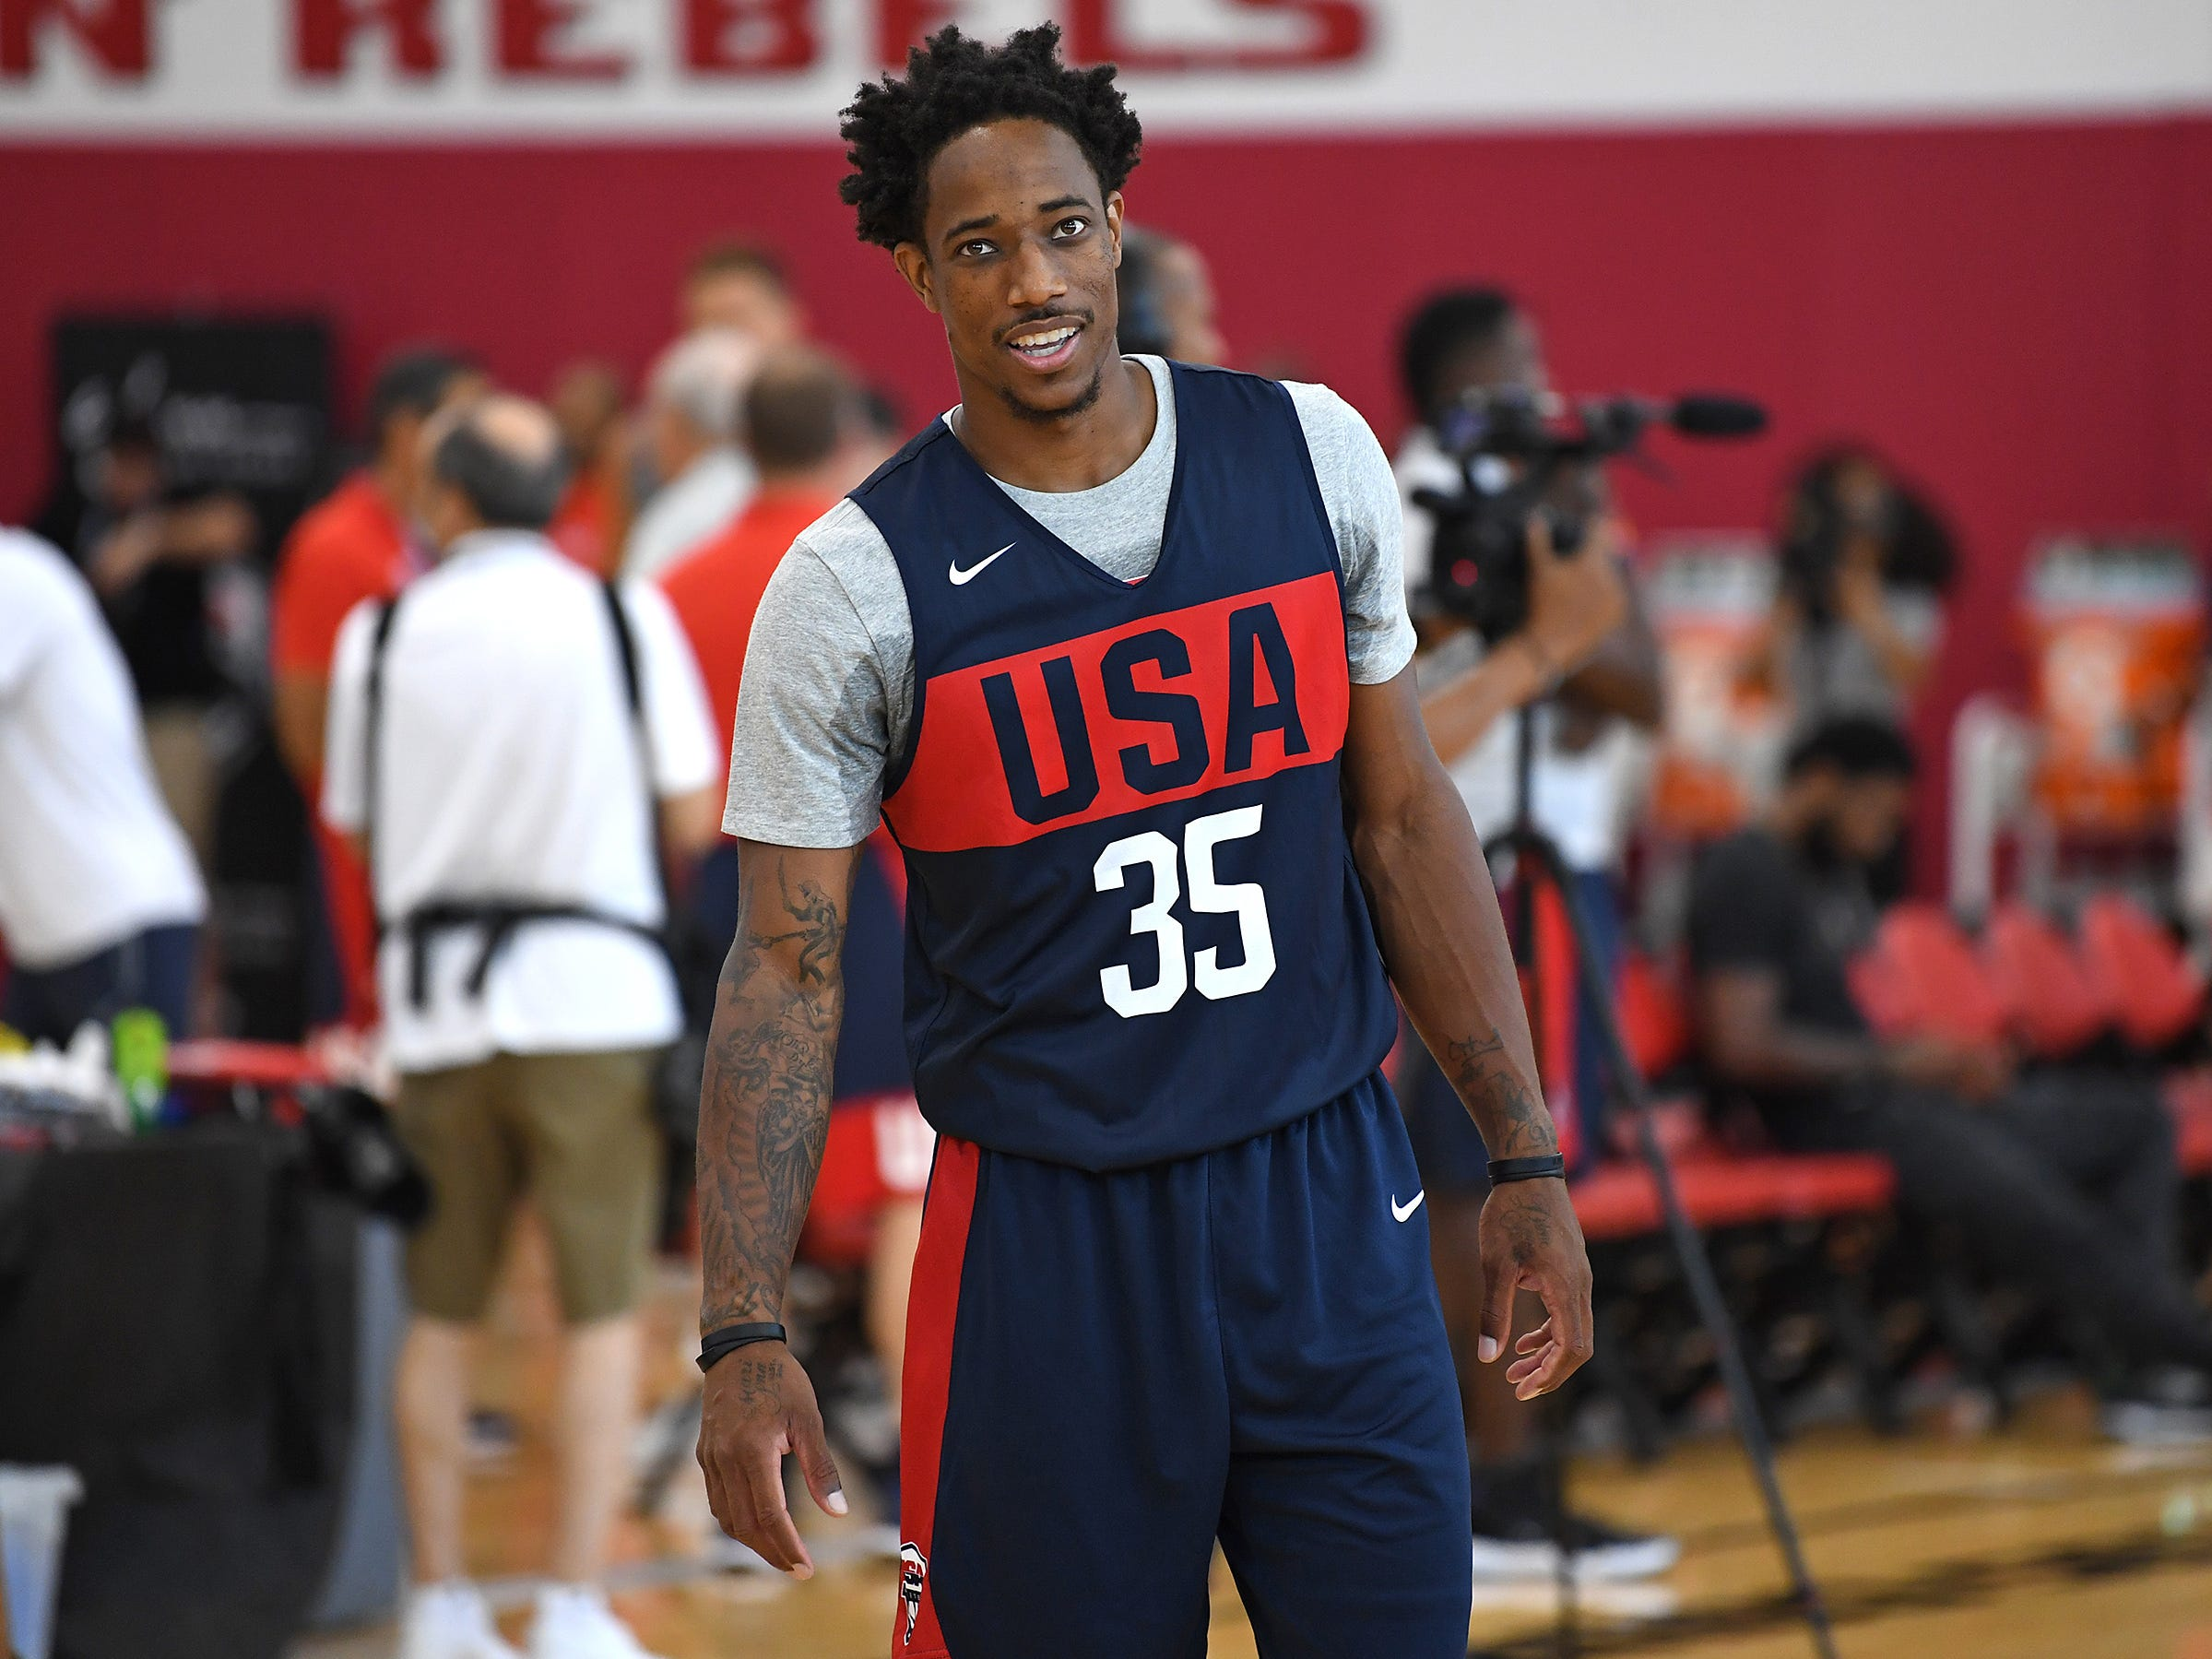 DeMar DeRozan is pictured during the 2018 USA Basketball National Team Minicamp.